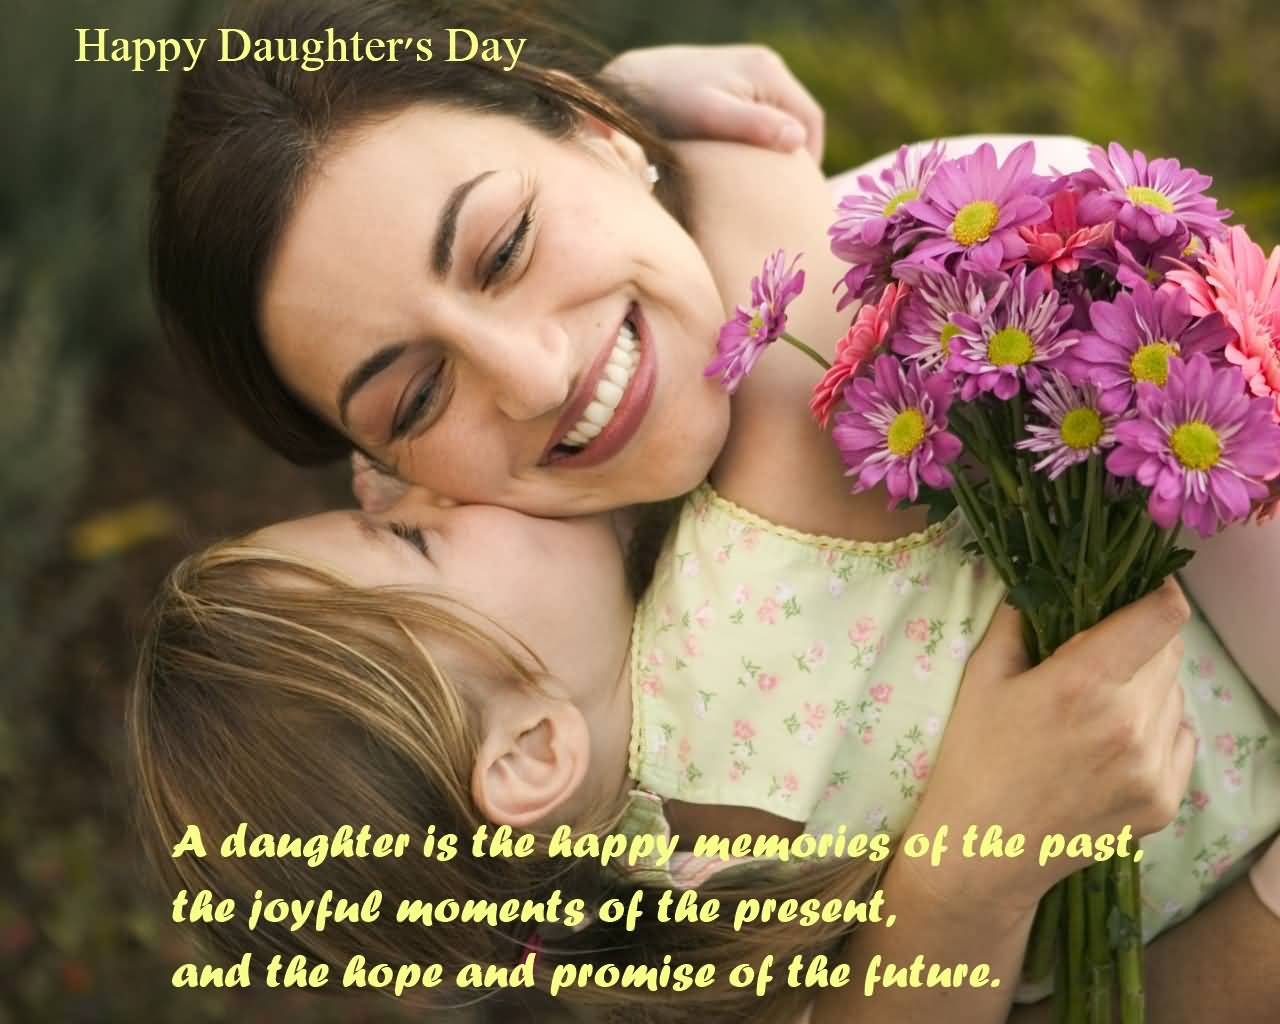 55 most beautiful daughters day wish pictures and images happy daughters day a daughter is the happy memories of the past kristyandbryce Images